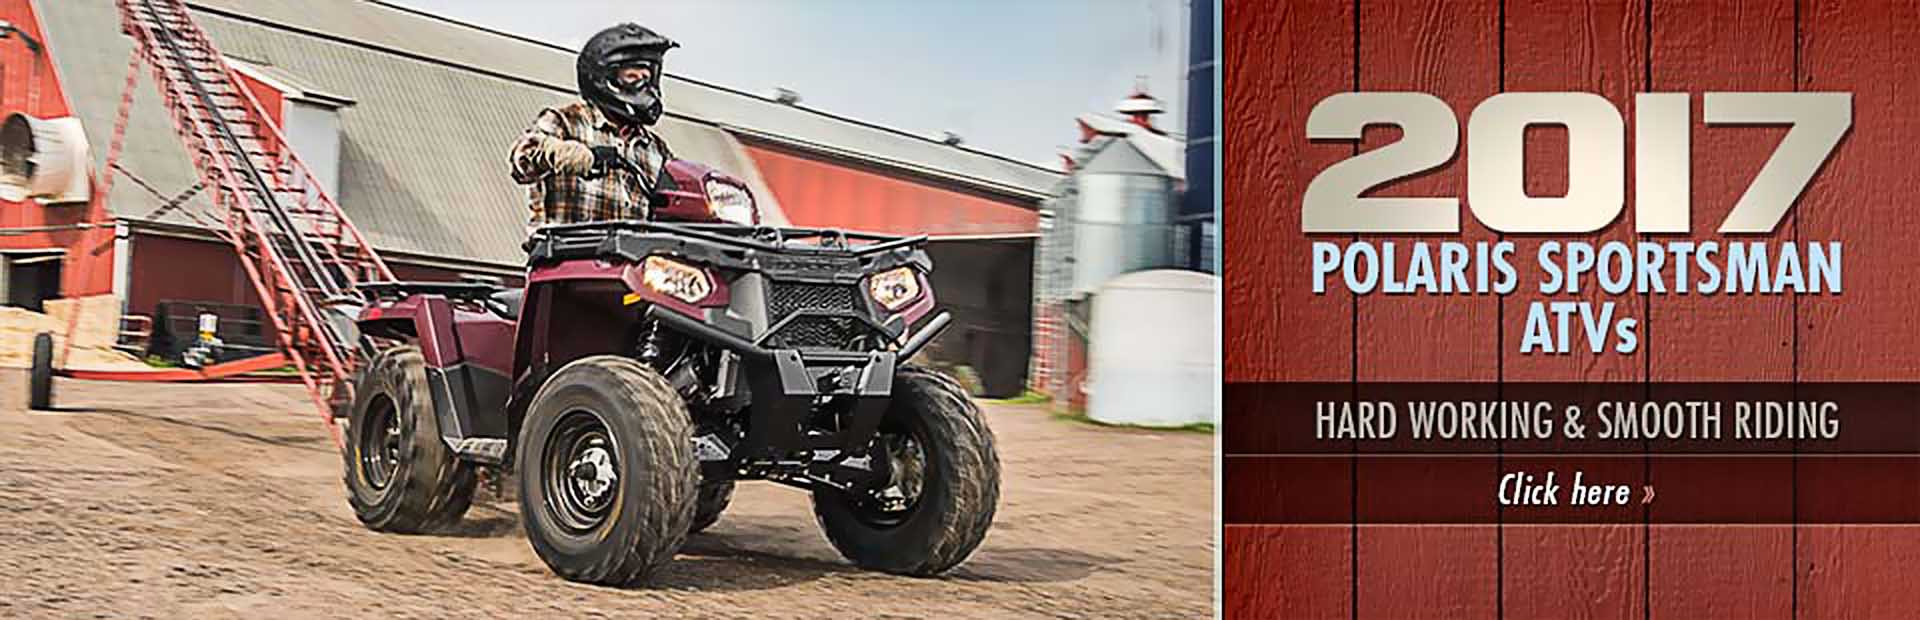 2017 Polaris Sportsman ATVs: Click here to view the models.